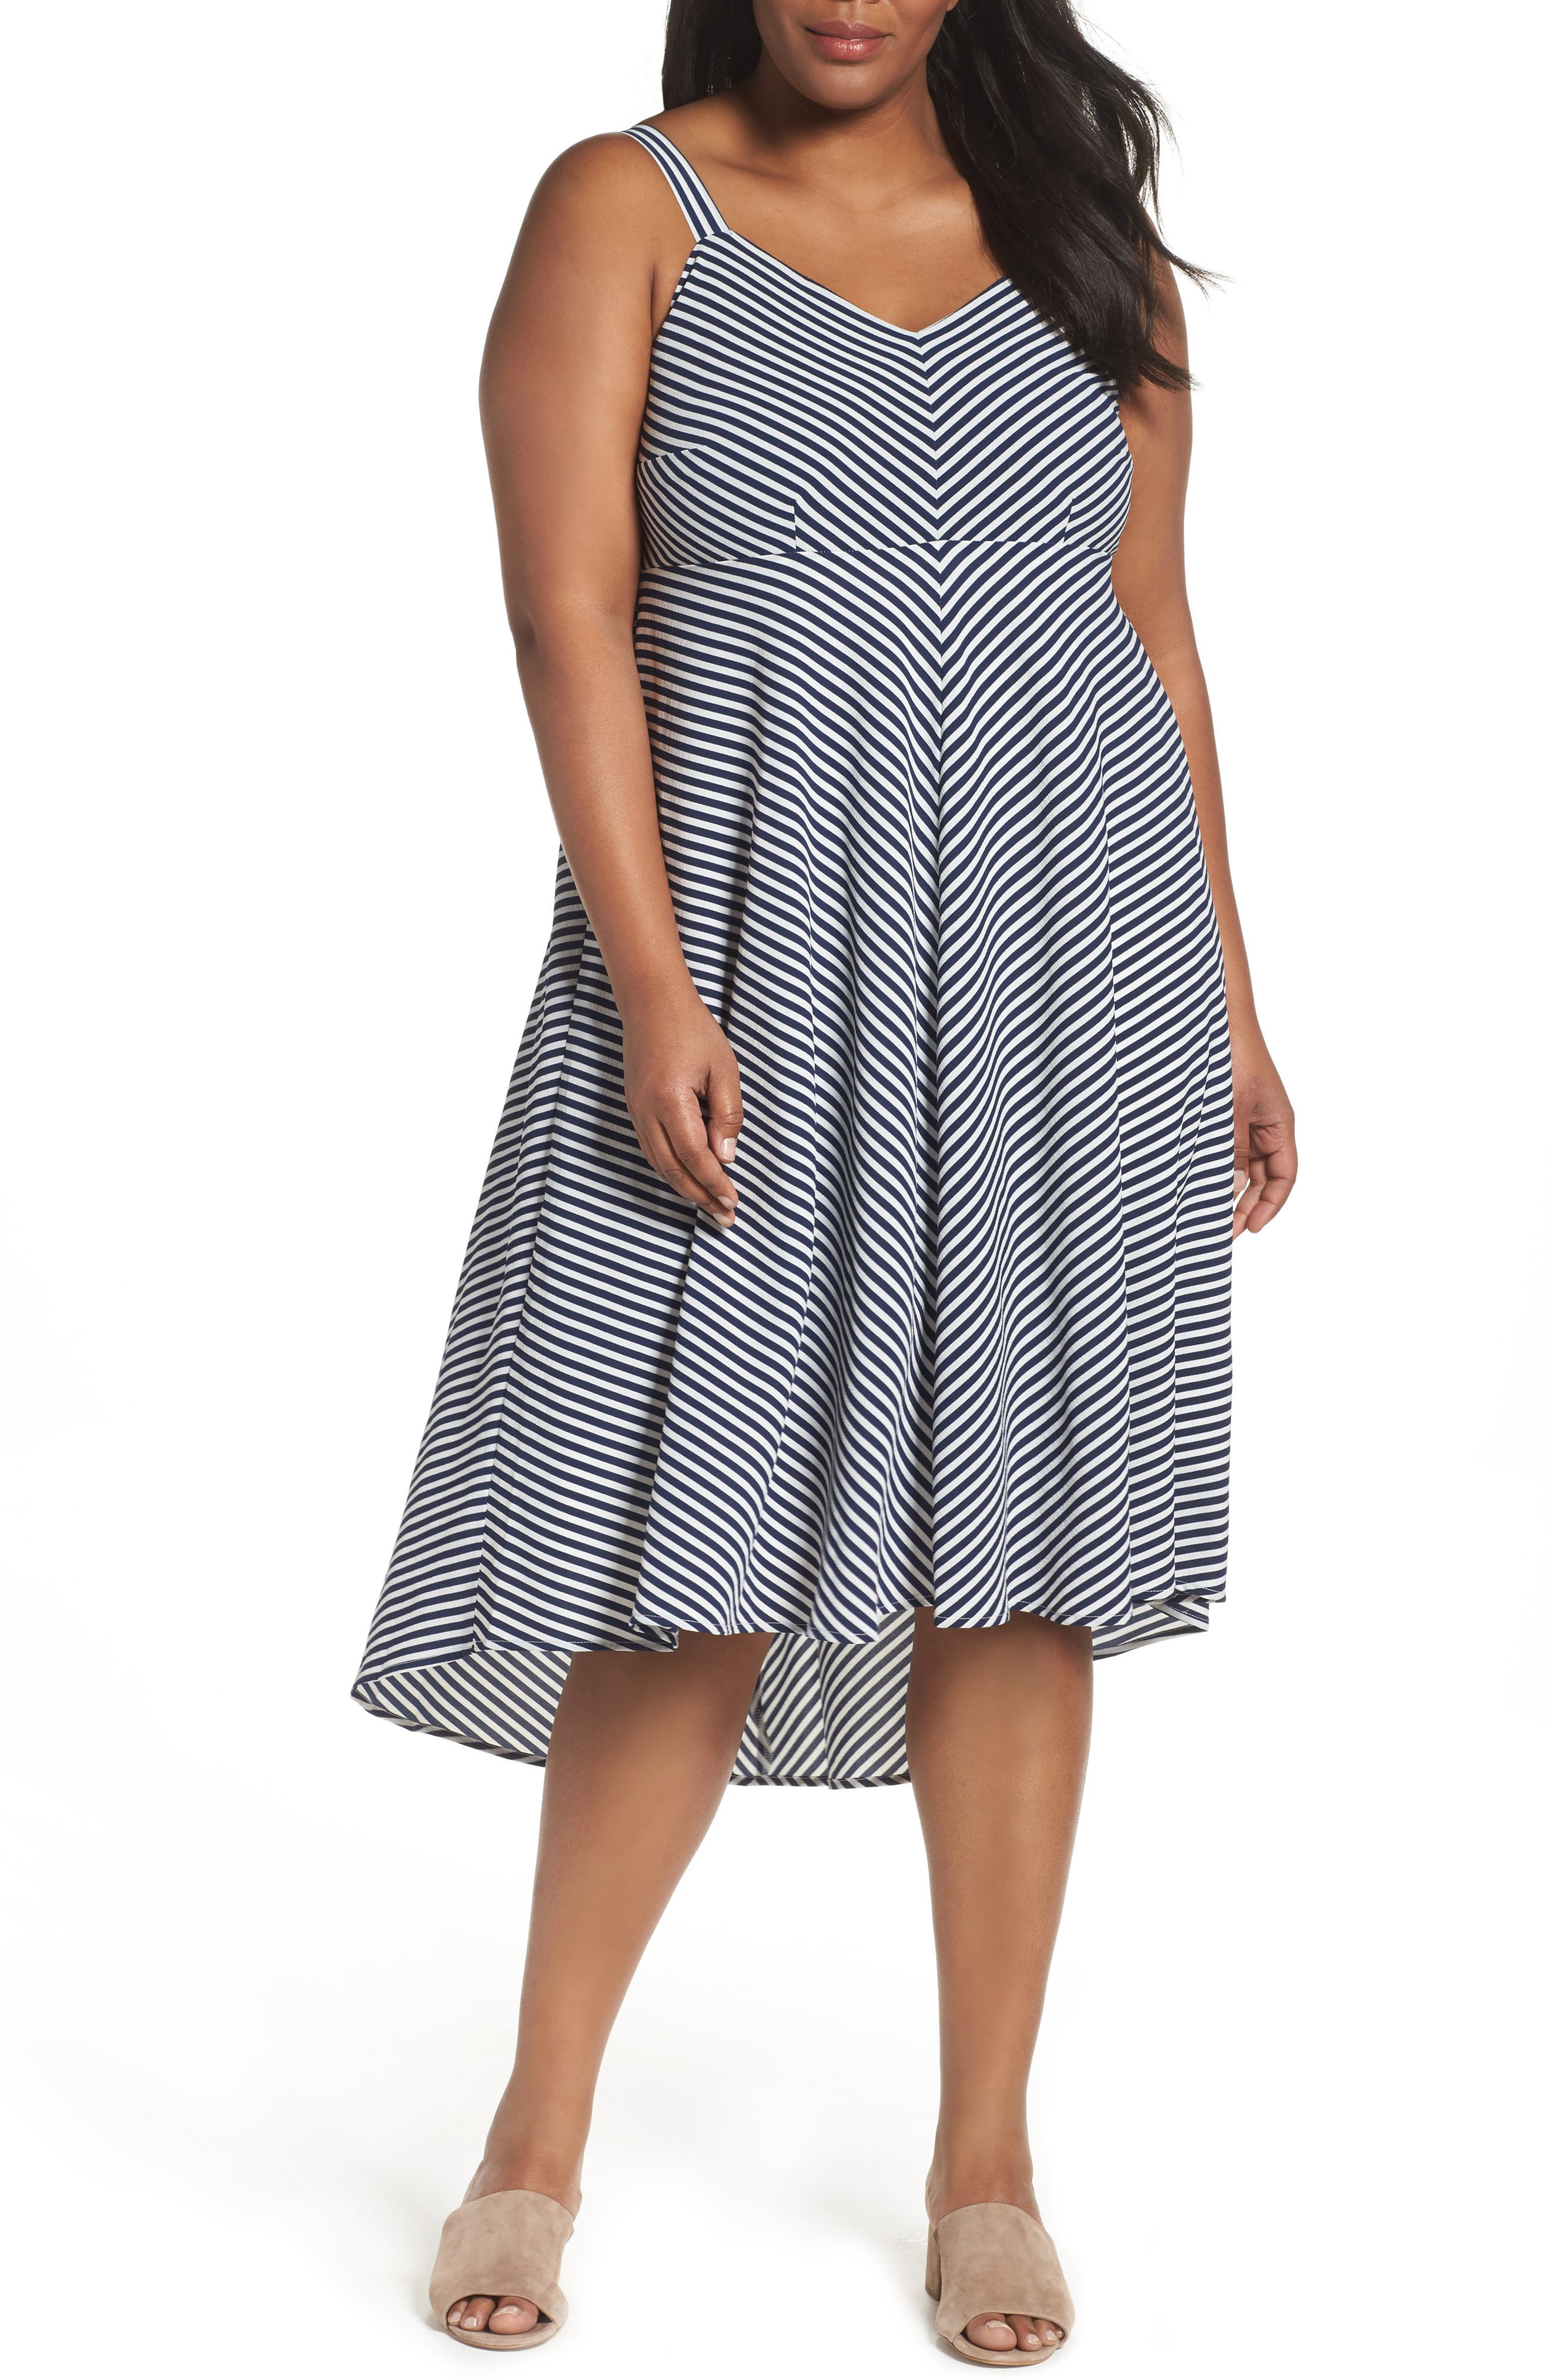 Taylor Dresses Stripe Midi Sundress (Plus Size)